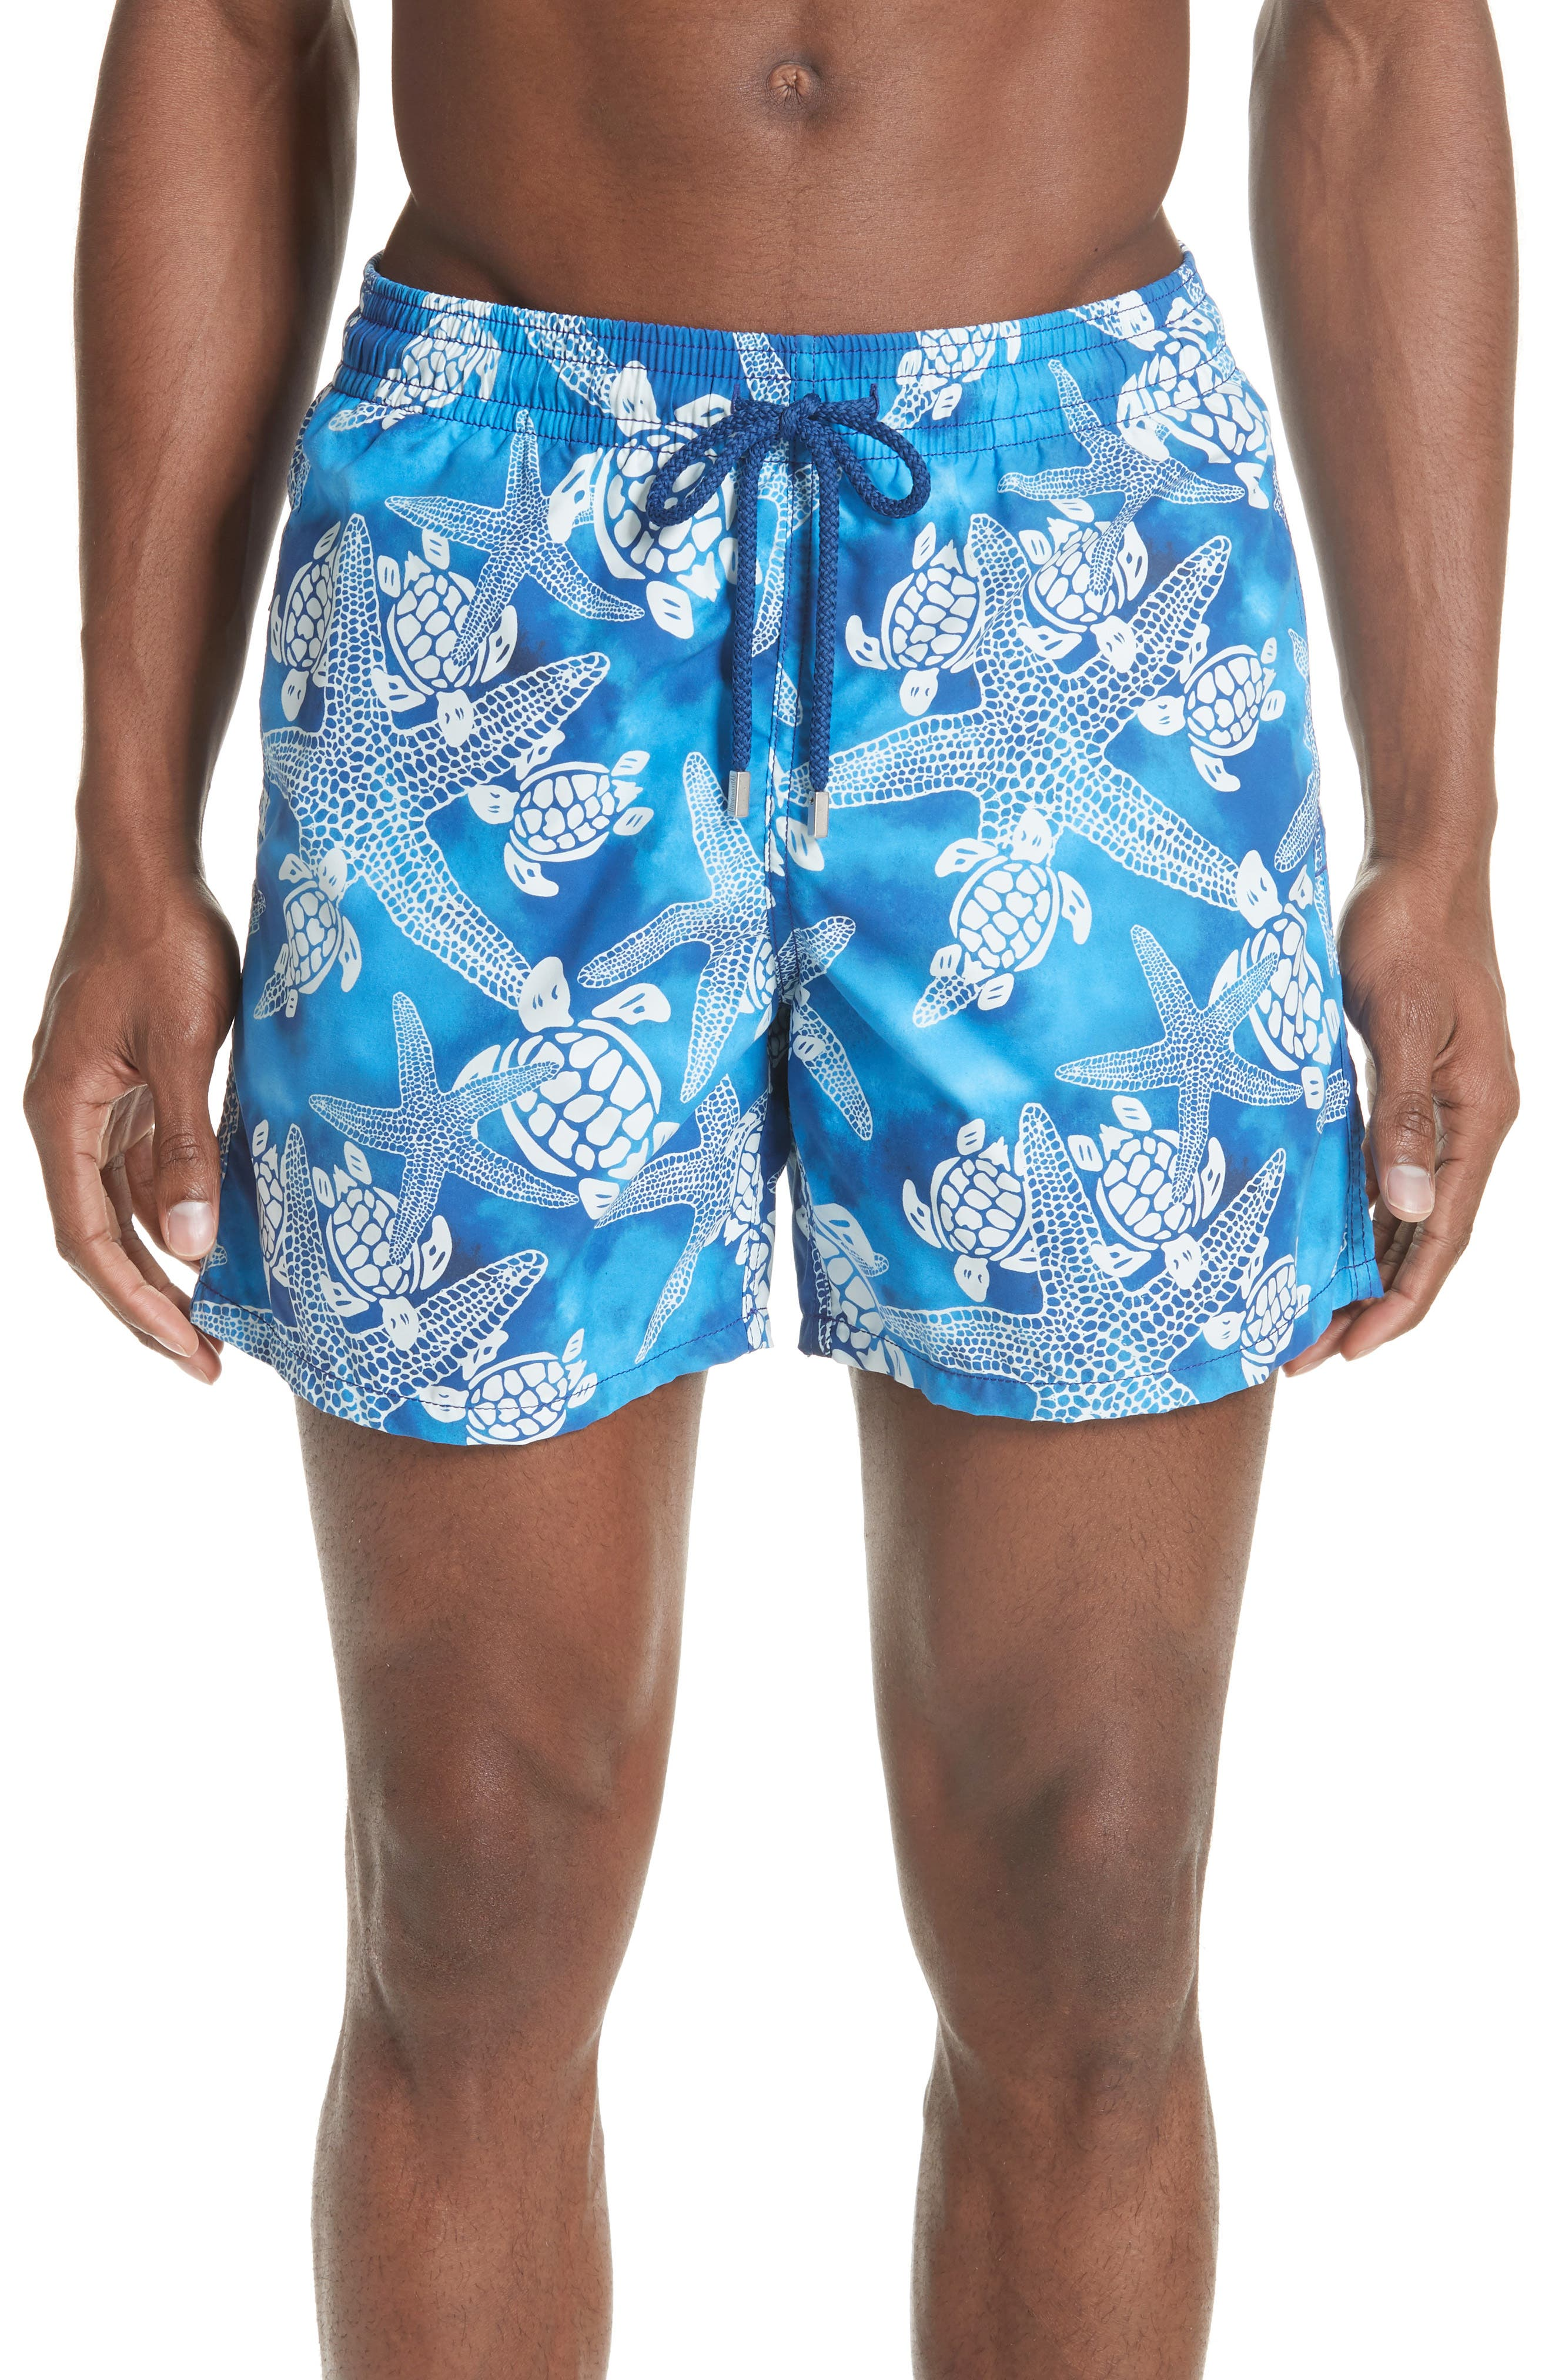 Starfish & Turtles Swim Trunks,                             Main thumbnail 1, color,                             NEPTUNE